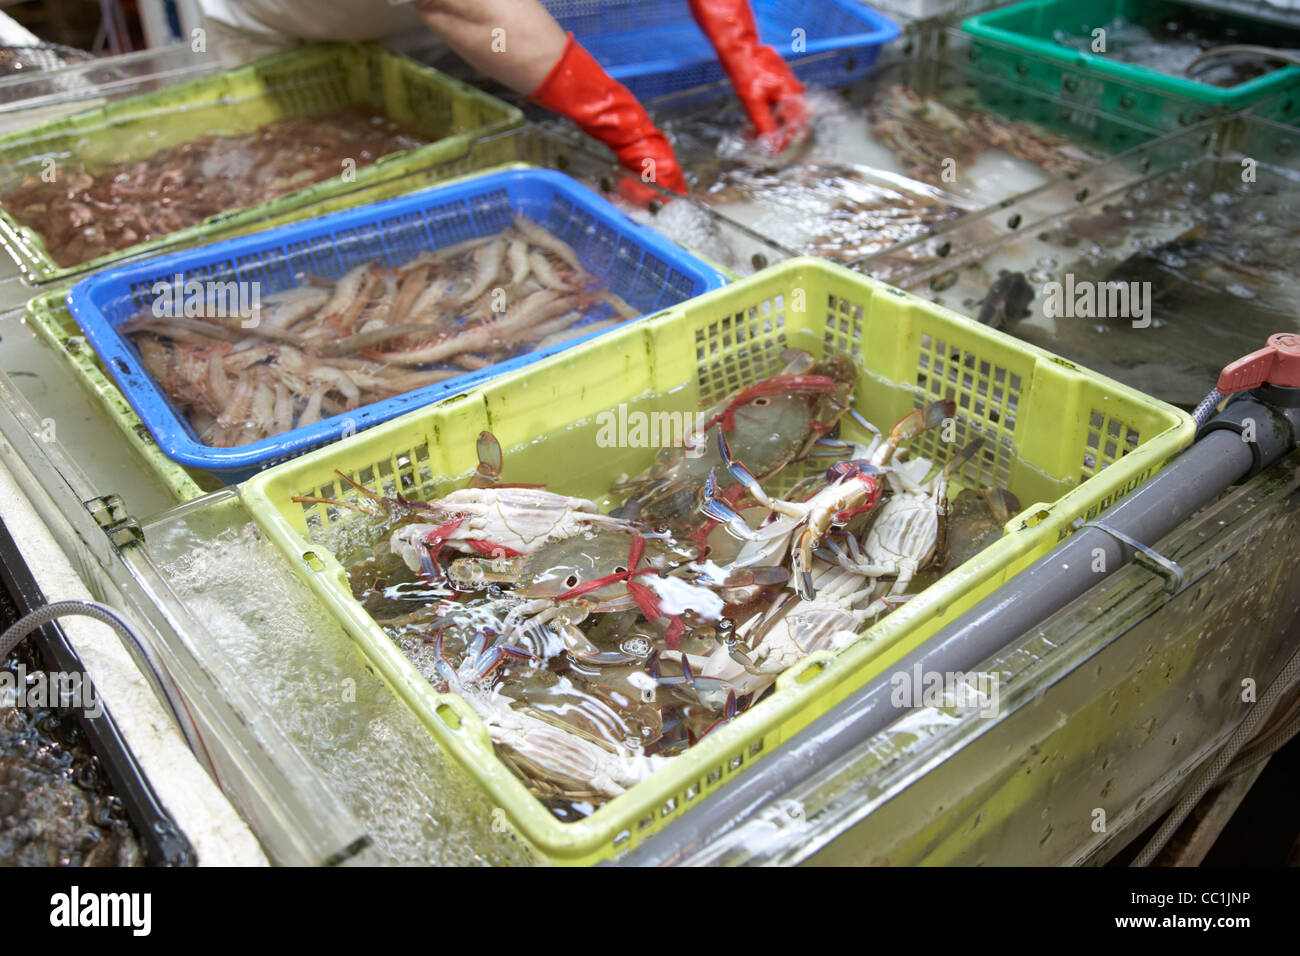 live crabs and shellfish for sale in tanks in yau ma tei indoor food market kowloon hong kong hksar china asia - Stock Image